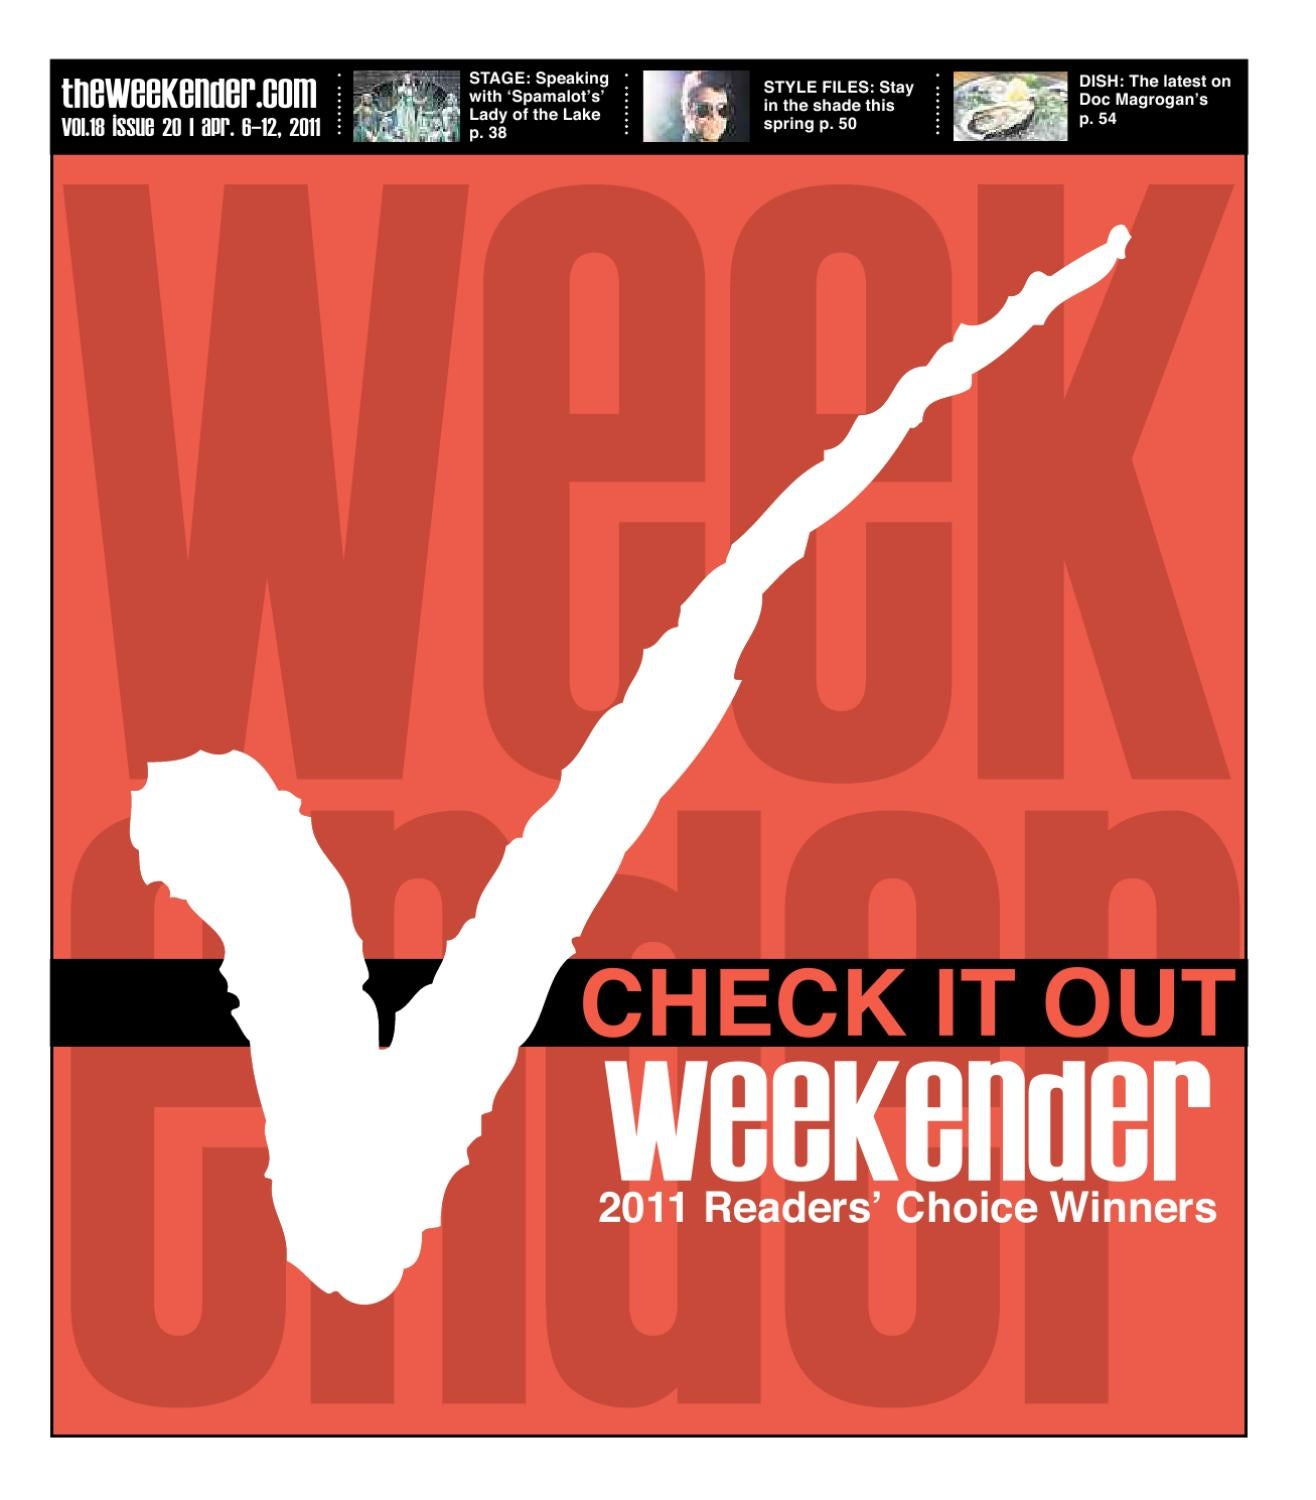 bf417ef216b The Weekender 04-06-2011 by The Wilkes-Barre Publishing Company - issuu